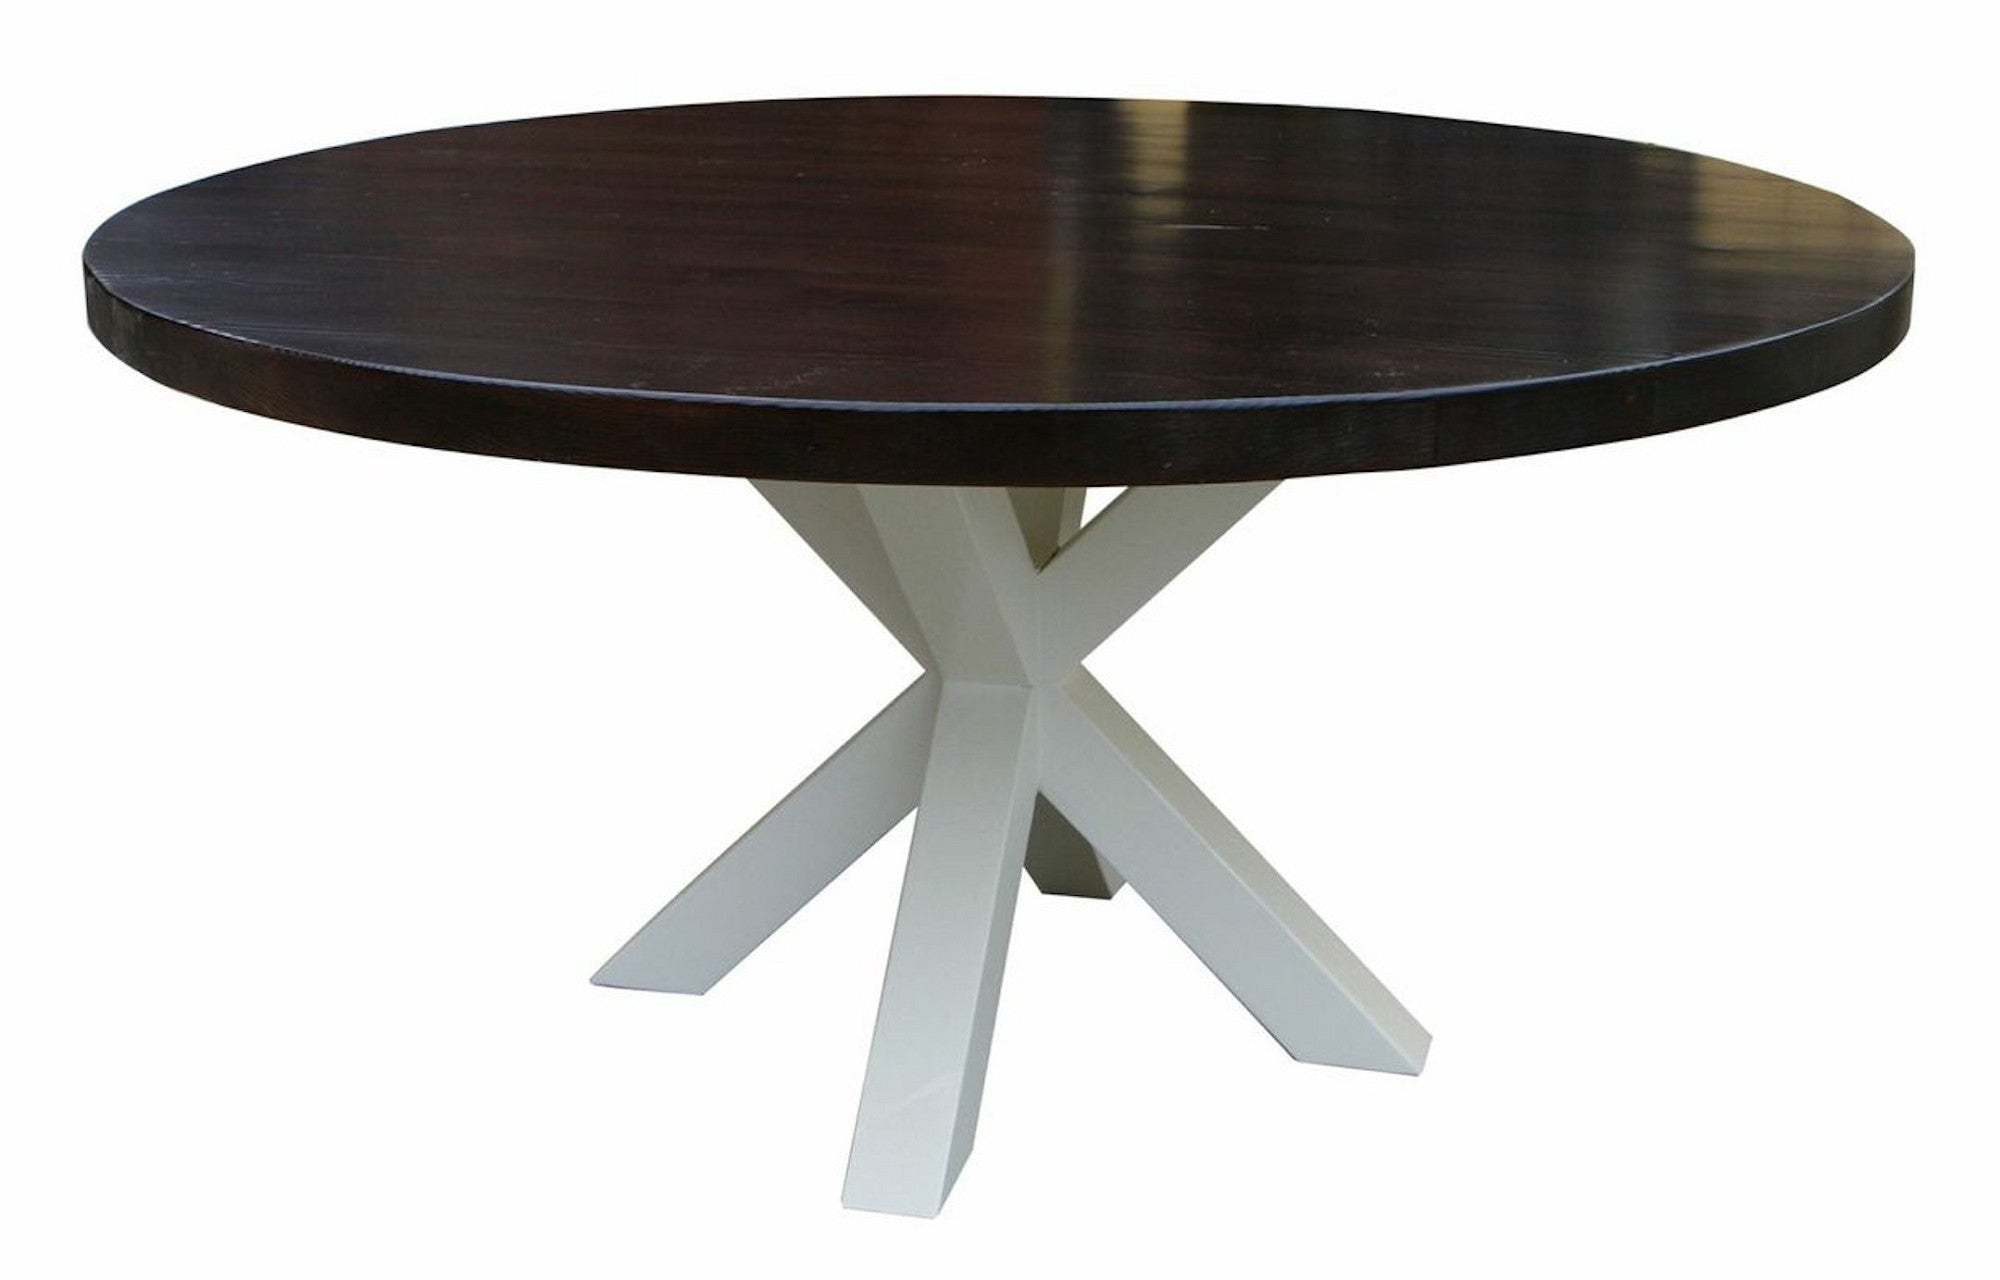 Arden Round Dining Table Built in Reclaimed Wood – Mortise & Tenon